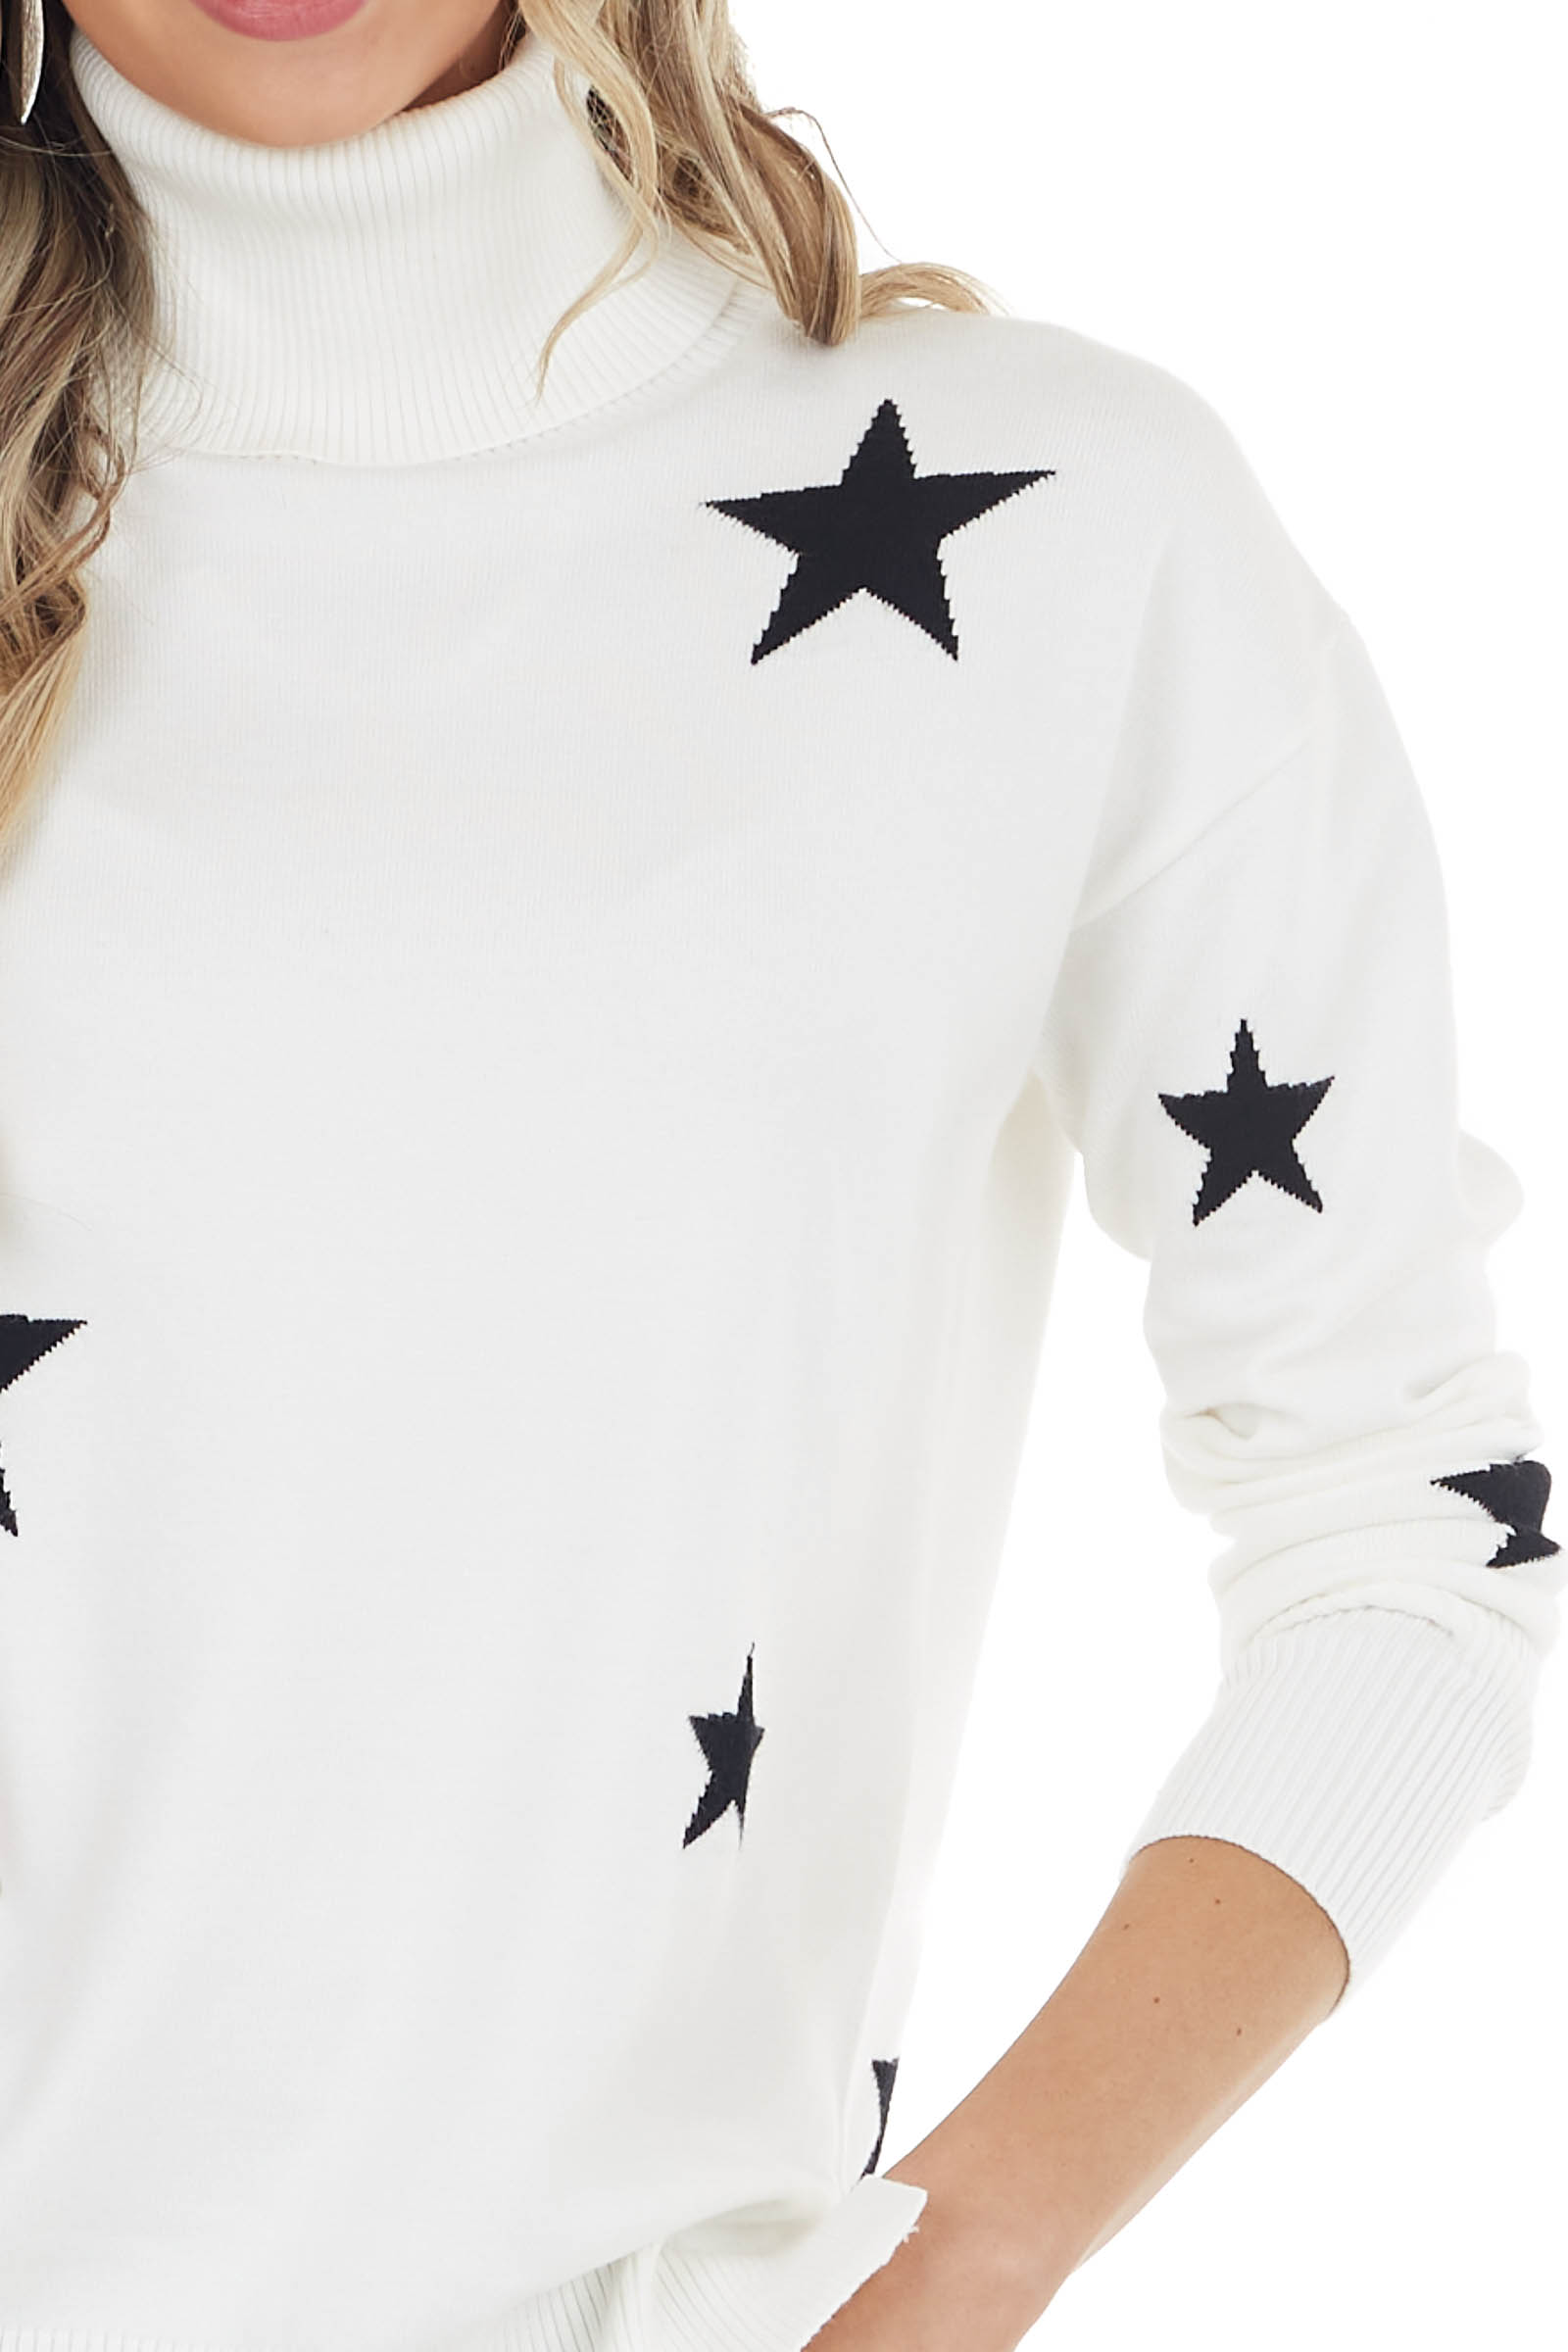 Off White Star Print Stretchy Knit Turtleneck Sweater